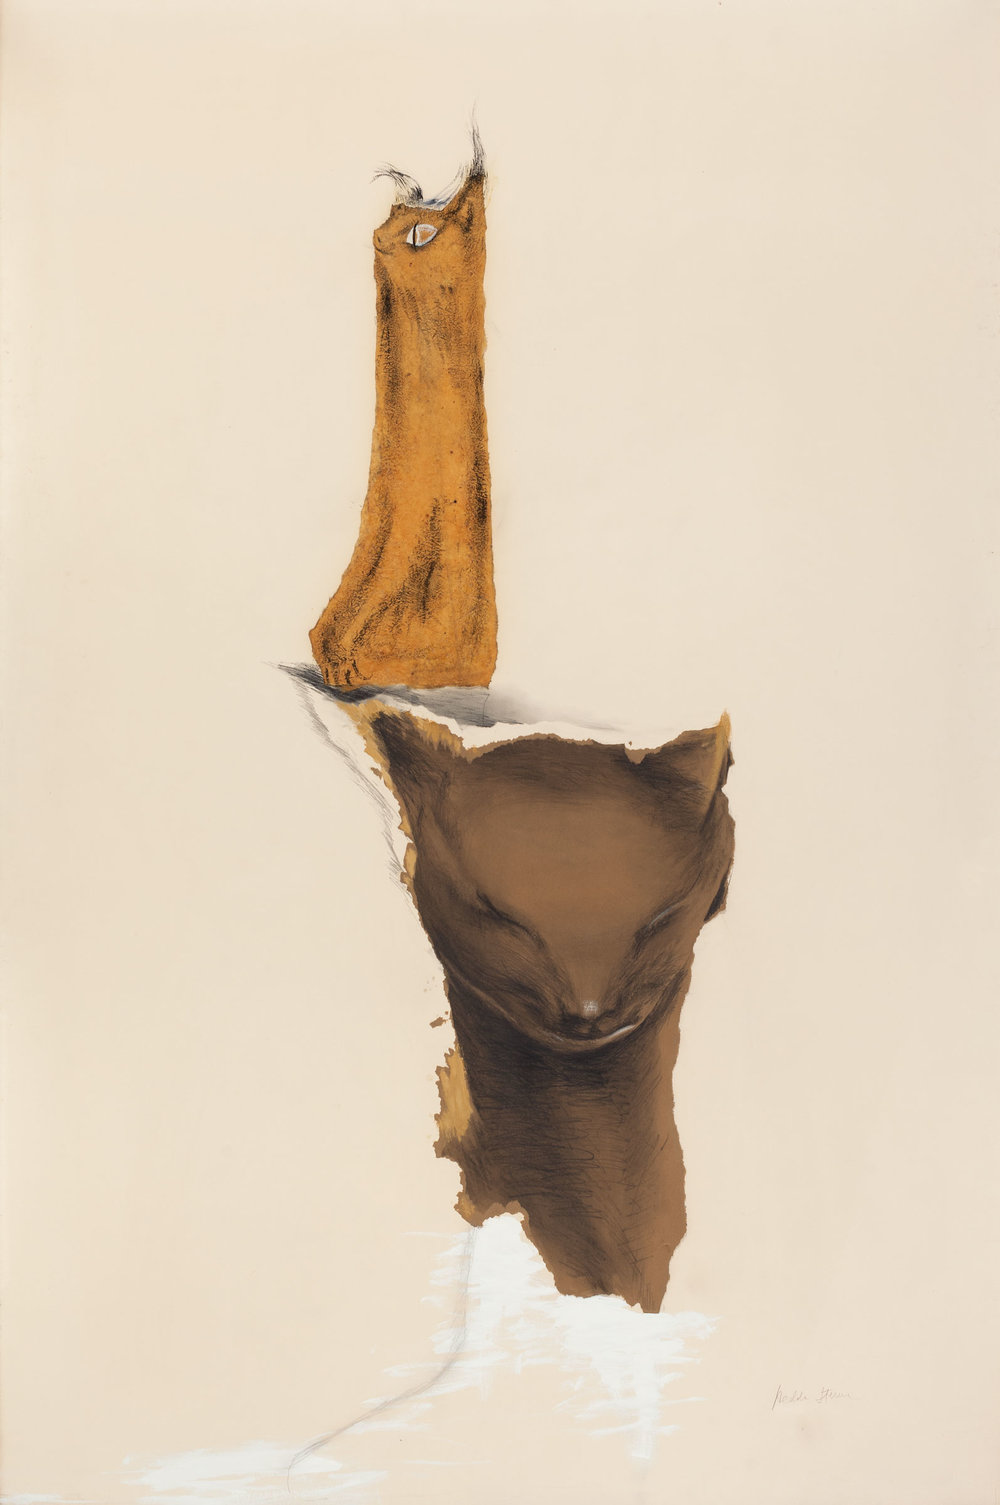 Hedda Sterne,  Katsonarock (Portrait of V.X.) , 1941, Pencil and gouache on Japanese paper mounted on paper, 60 x 40 in.